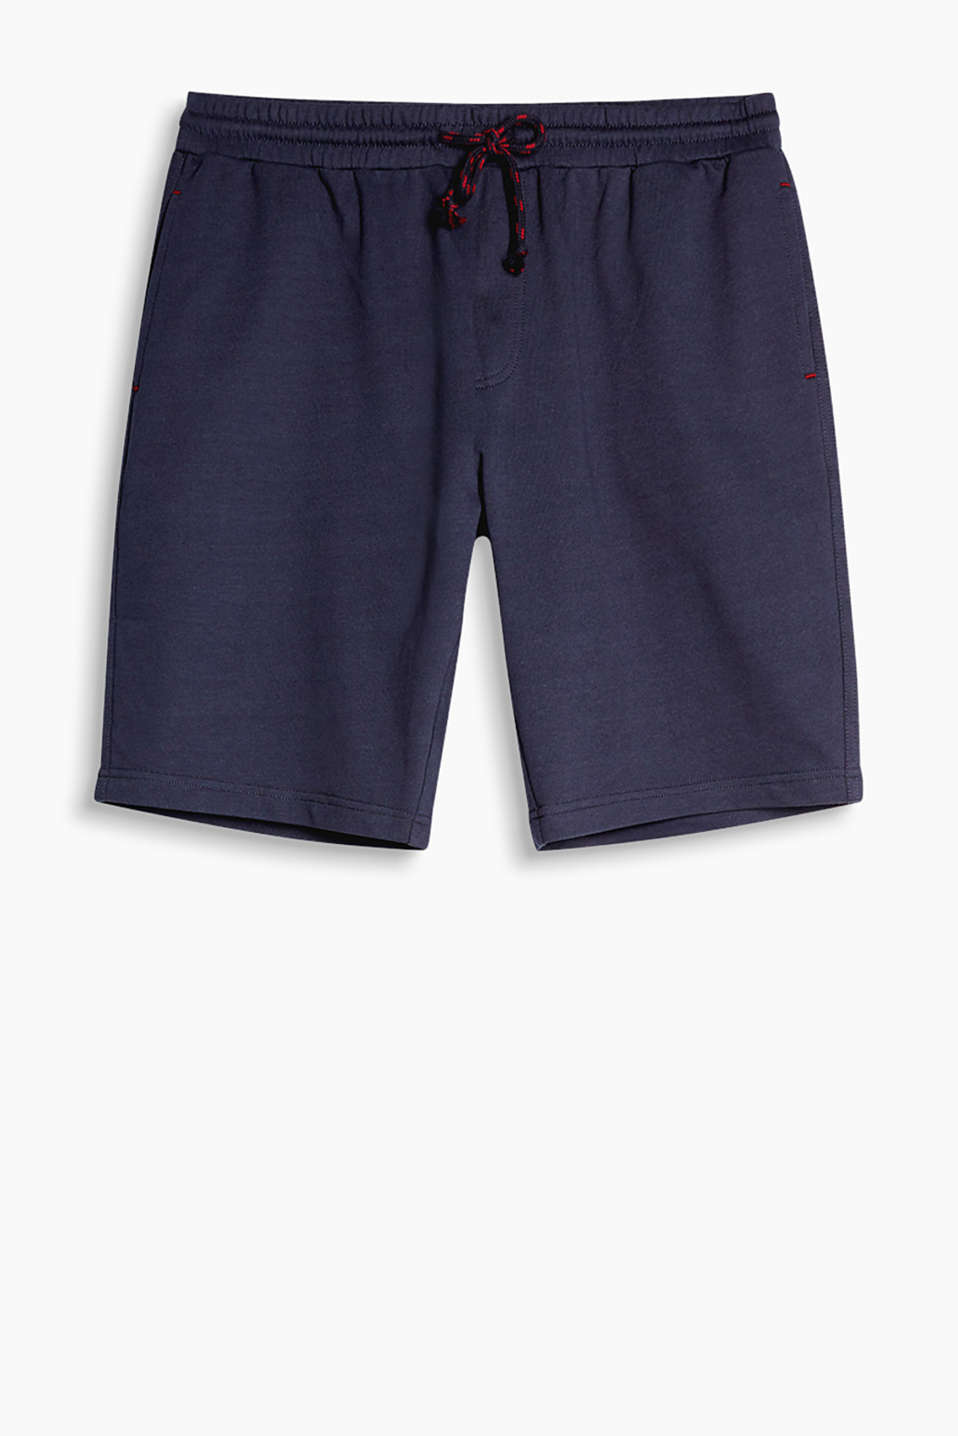 Jersey Bermudas with a wide elasticated waistband